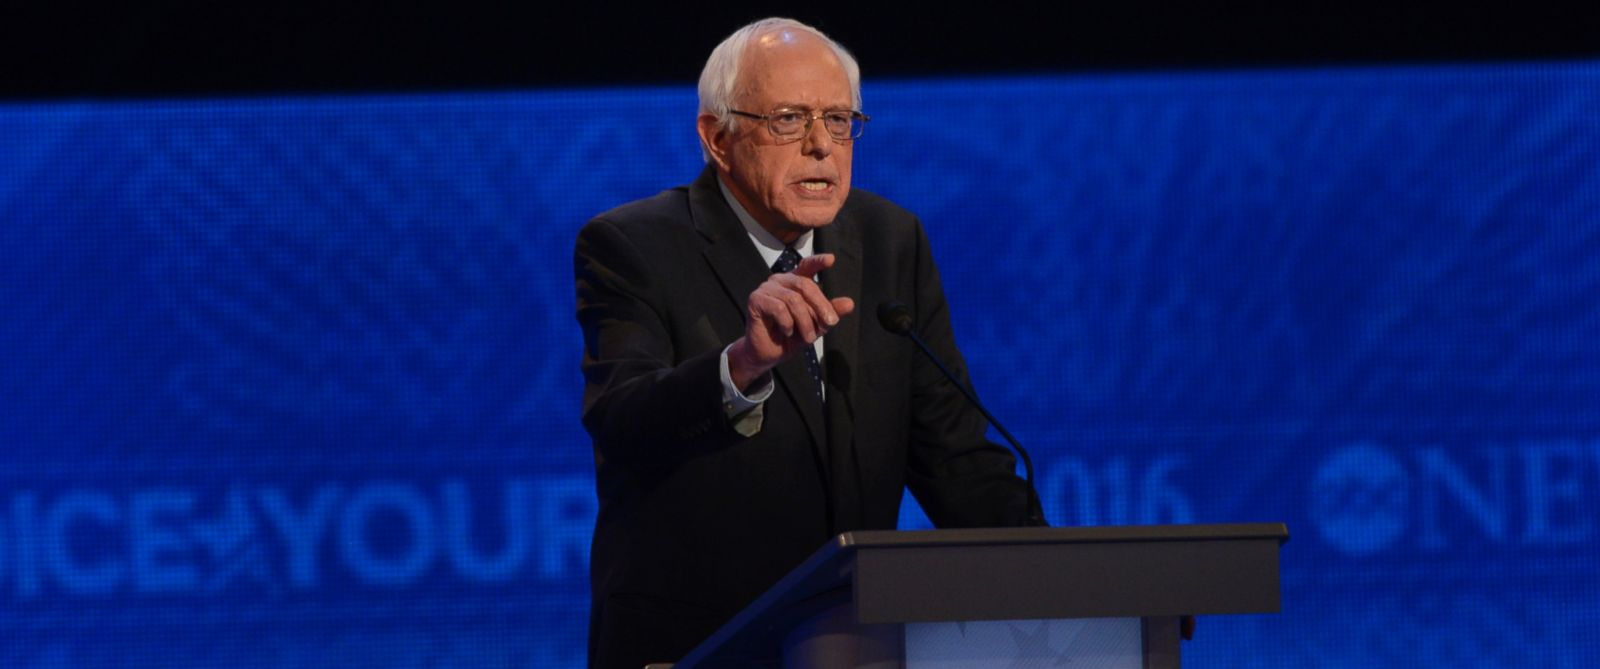 PHOTO: Sen. Bernie Sanders spoke at the Democratic Presidential debate at St. Anselm College in Manchester, NH.